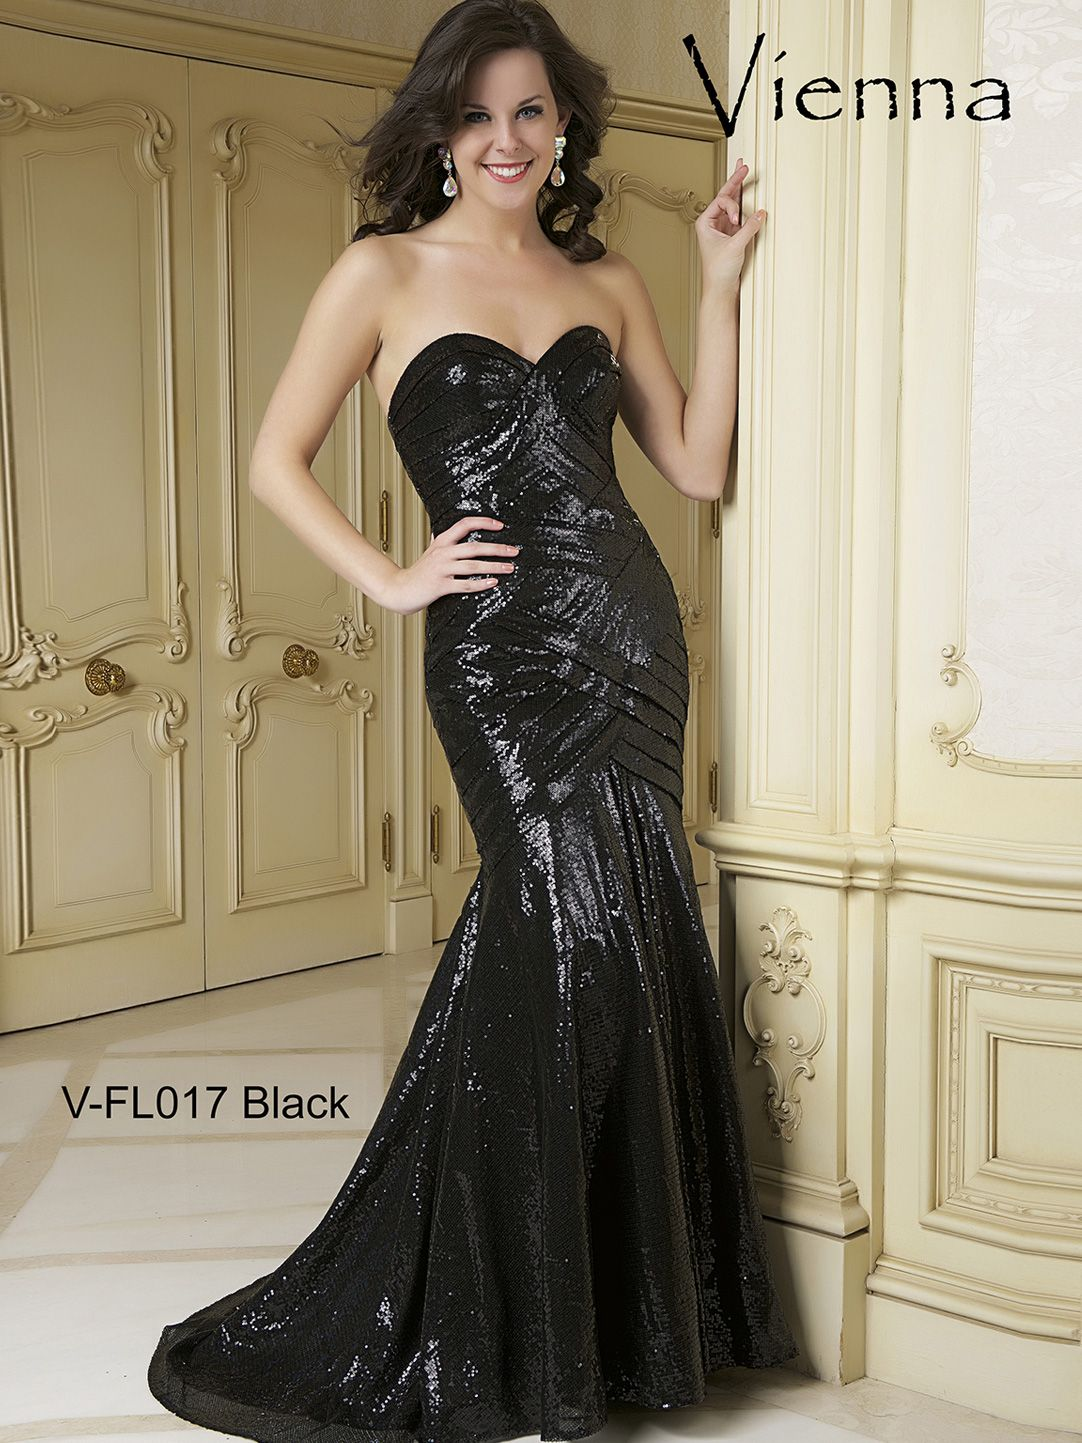 Sweetheart Sequined Formal Prom Dress Vienna Fl017 Dresses Strapless Dress Formal Homecoming Dresses [ 1443 x 1082 Pixel ]